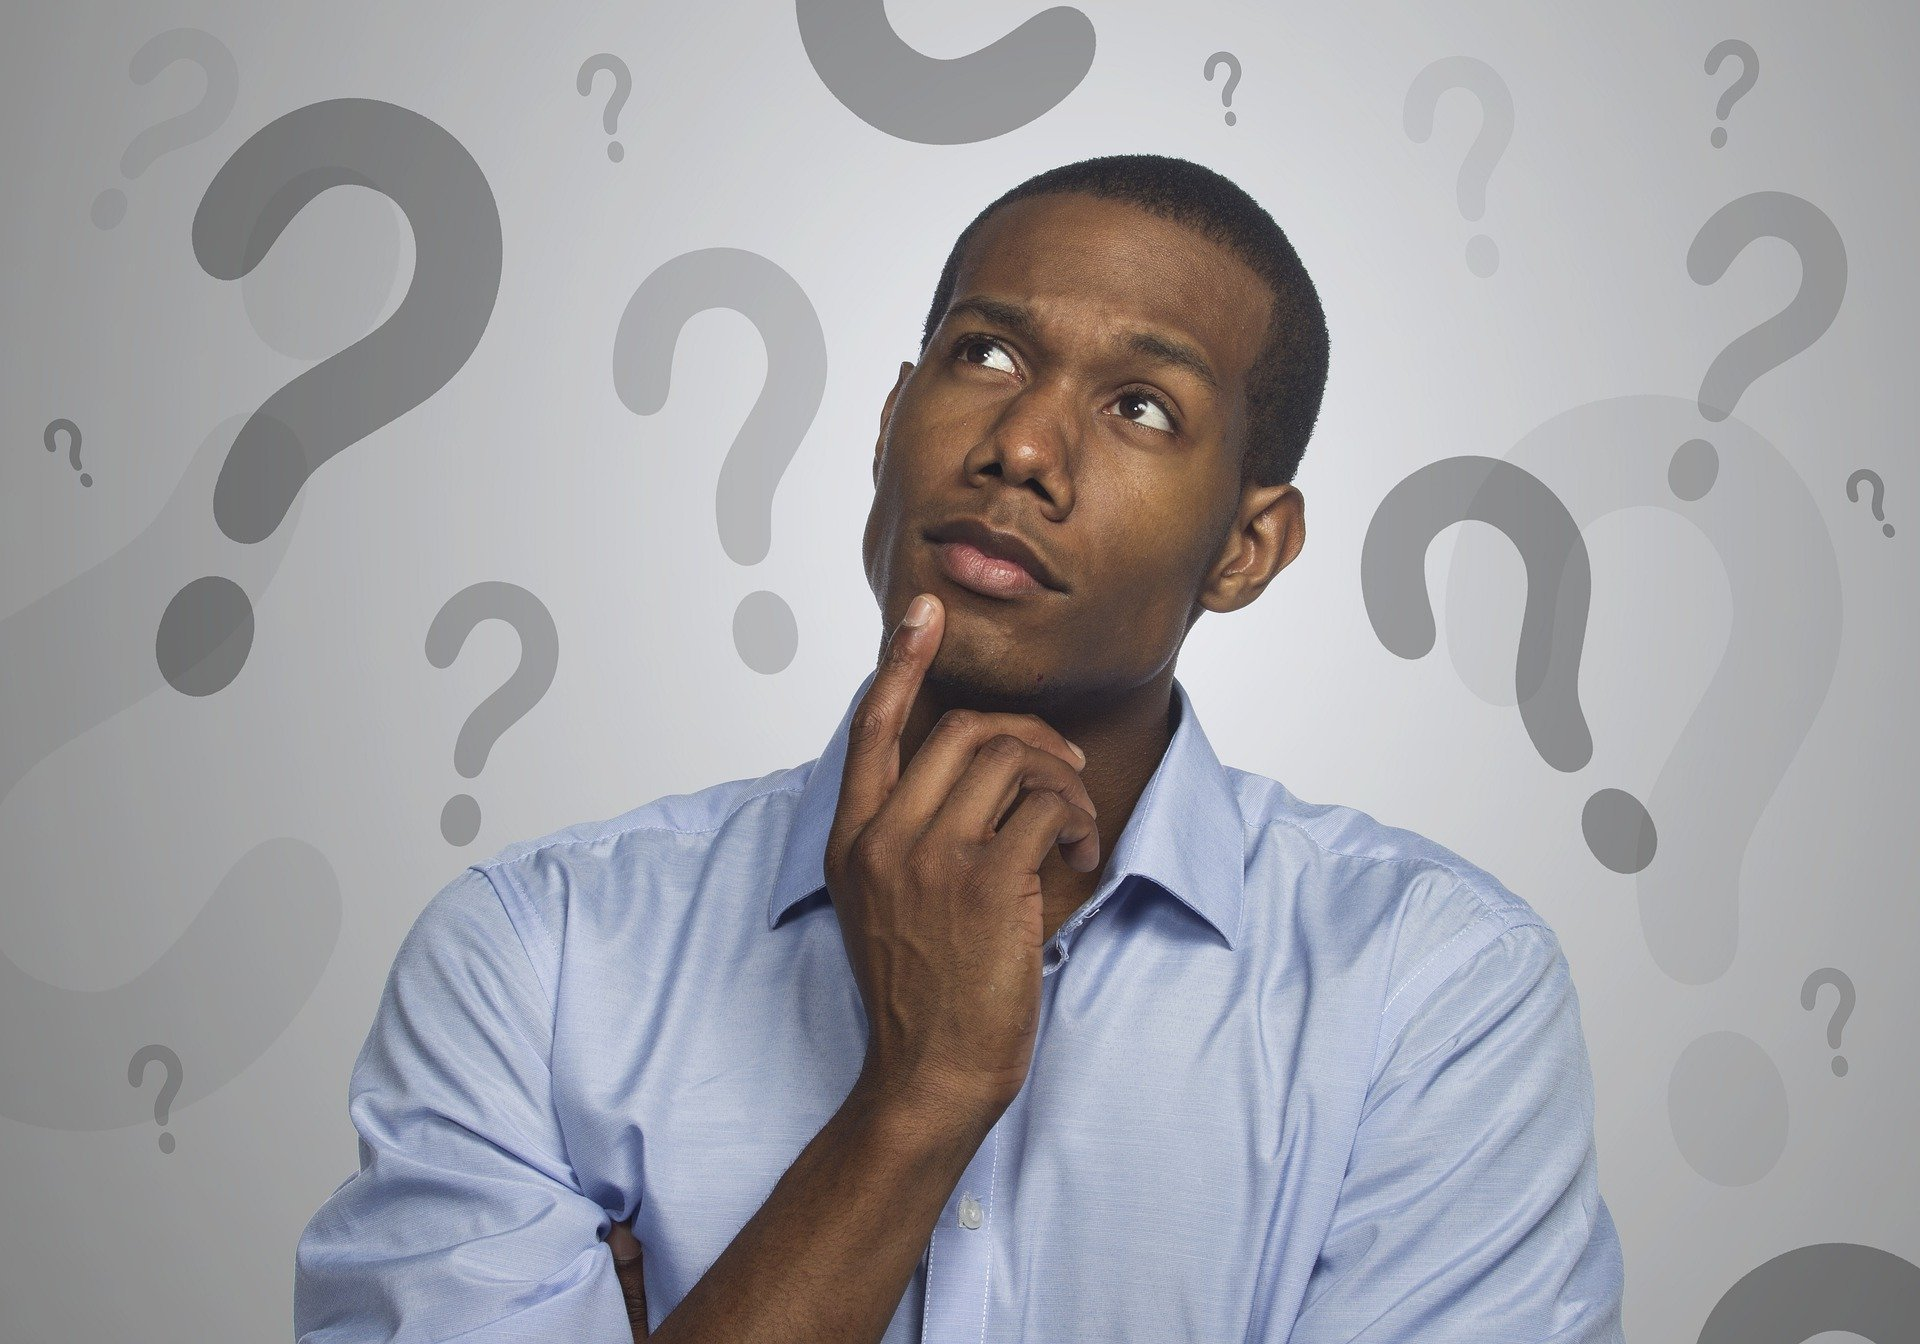 Image showing man with questions